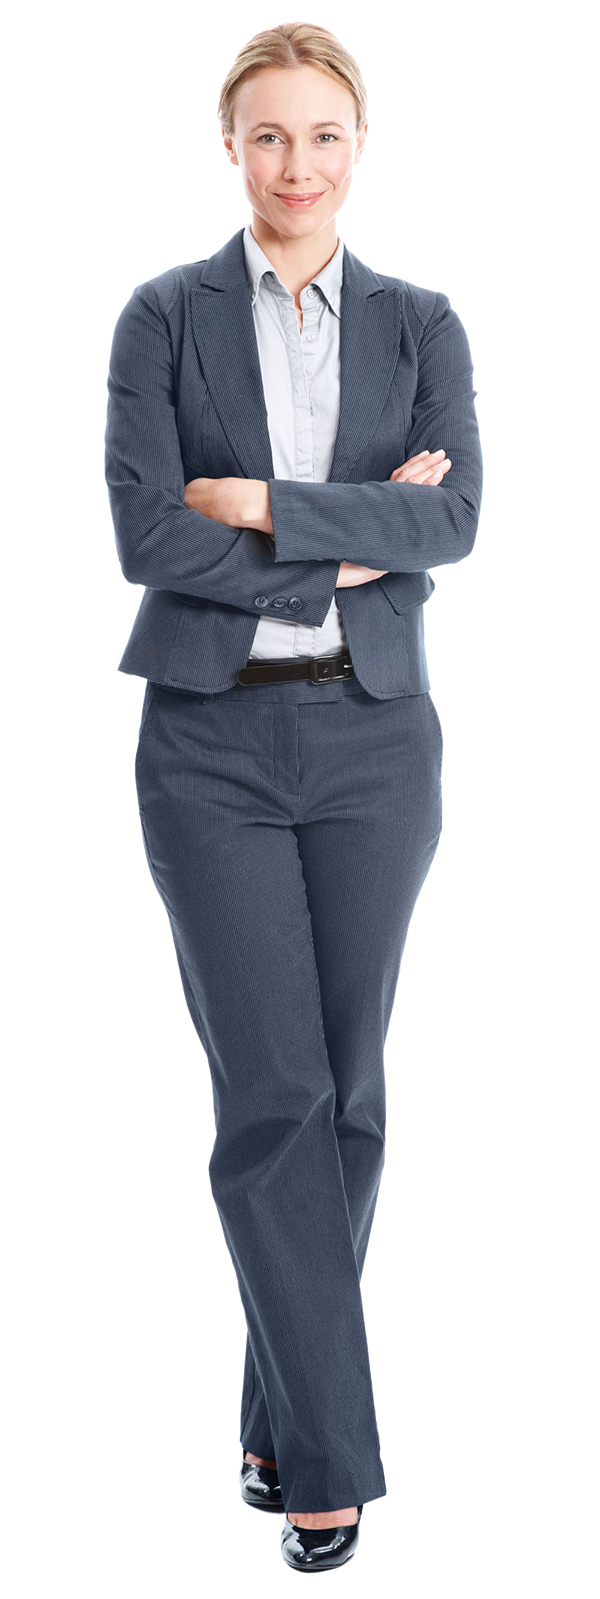 Person wearing a suit with arms folded